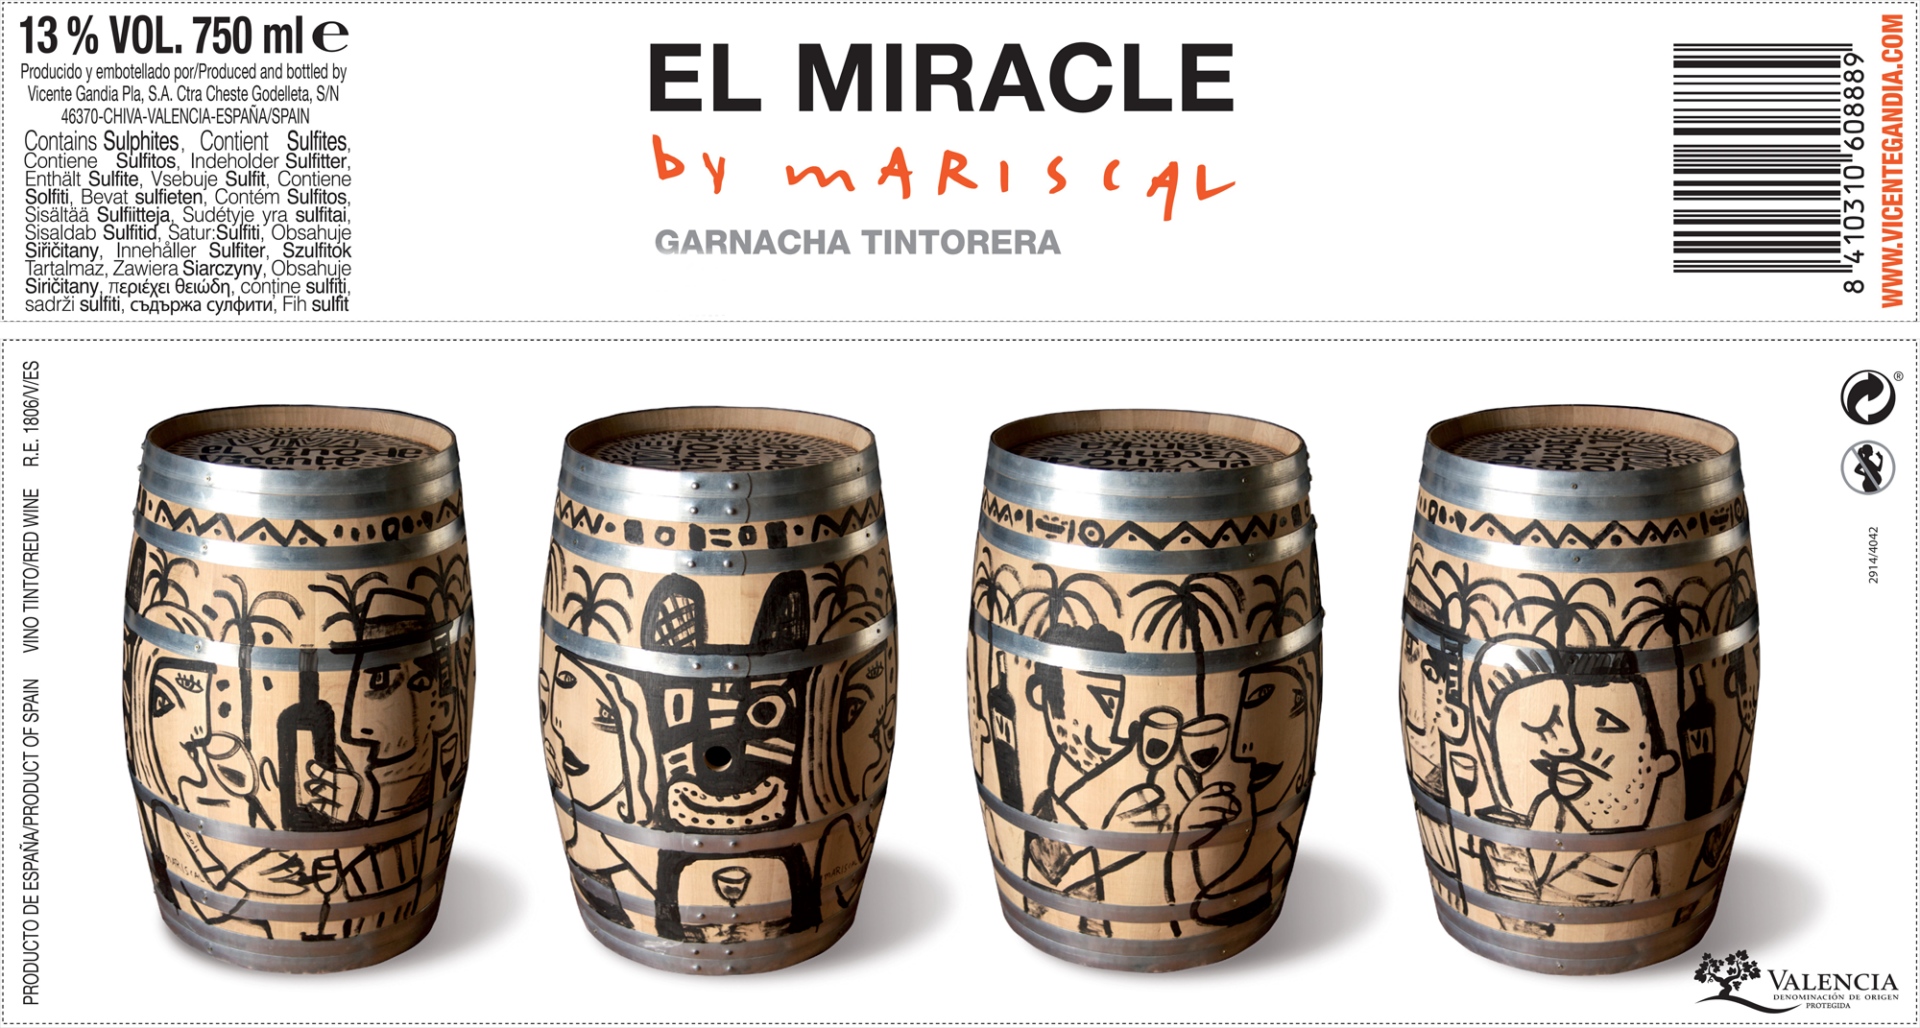 El Miracle by Mariscal, Valencia DO